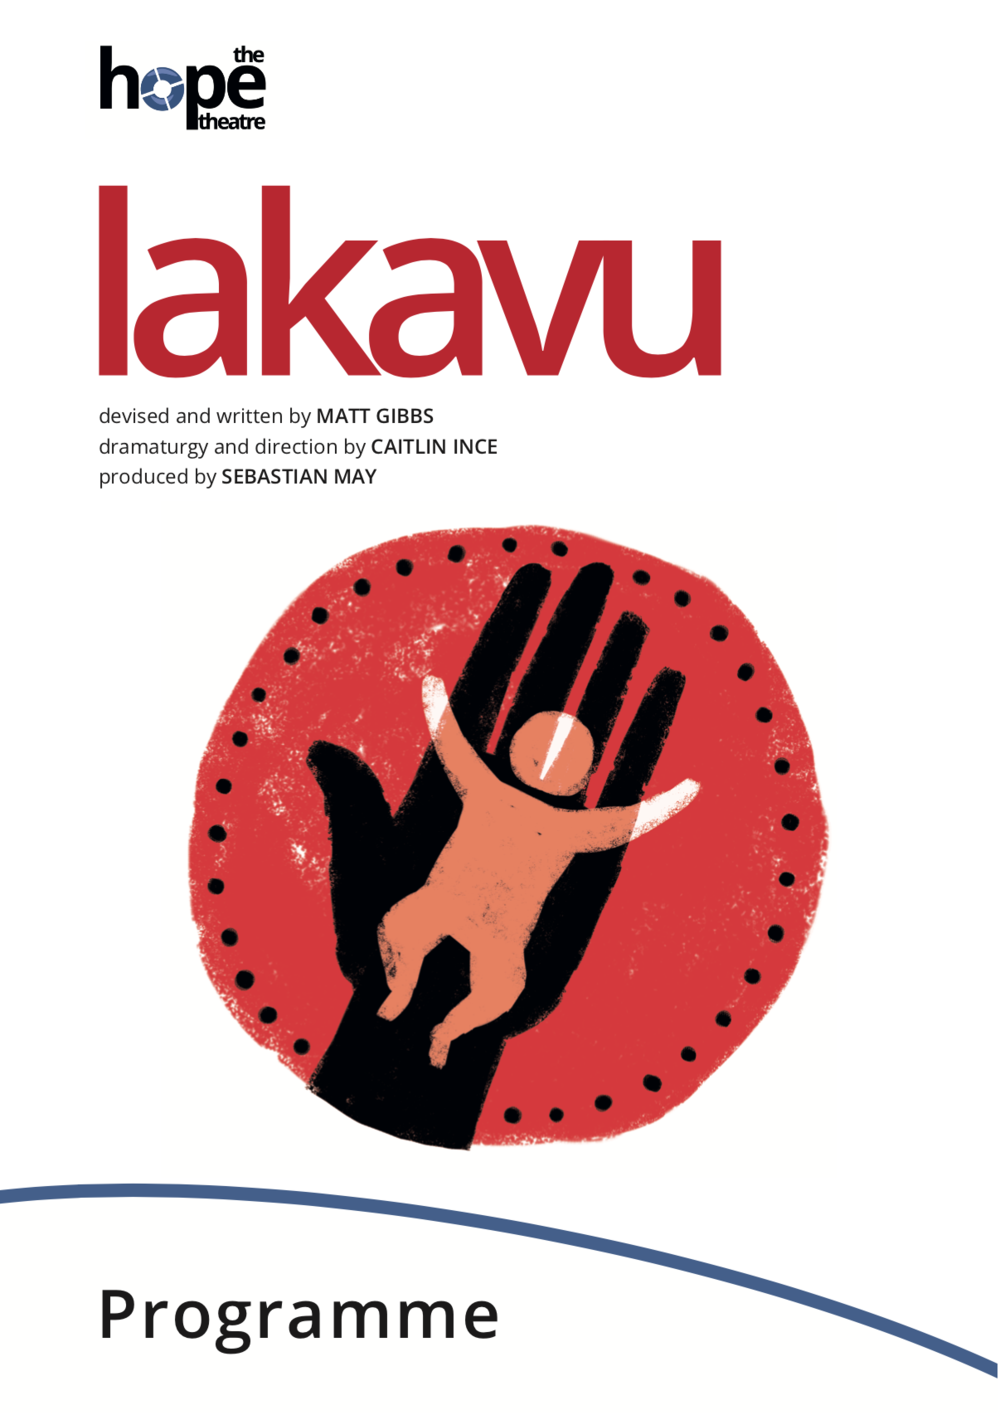 Lakavu publicity - Programme for Hope Theatre.png